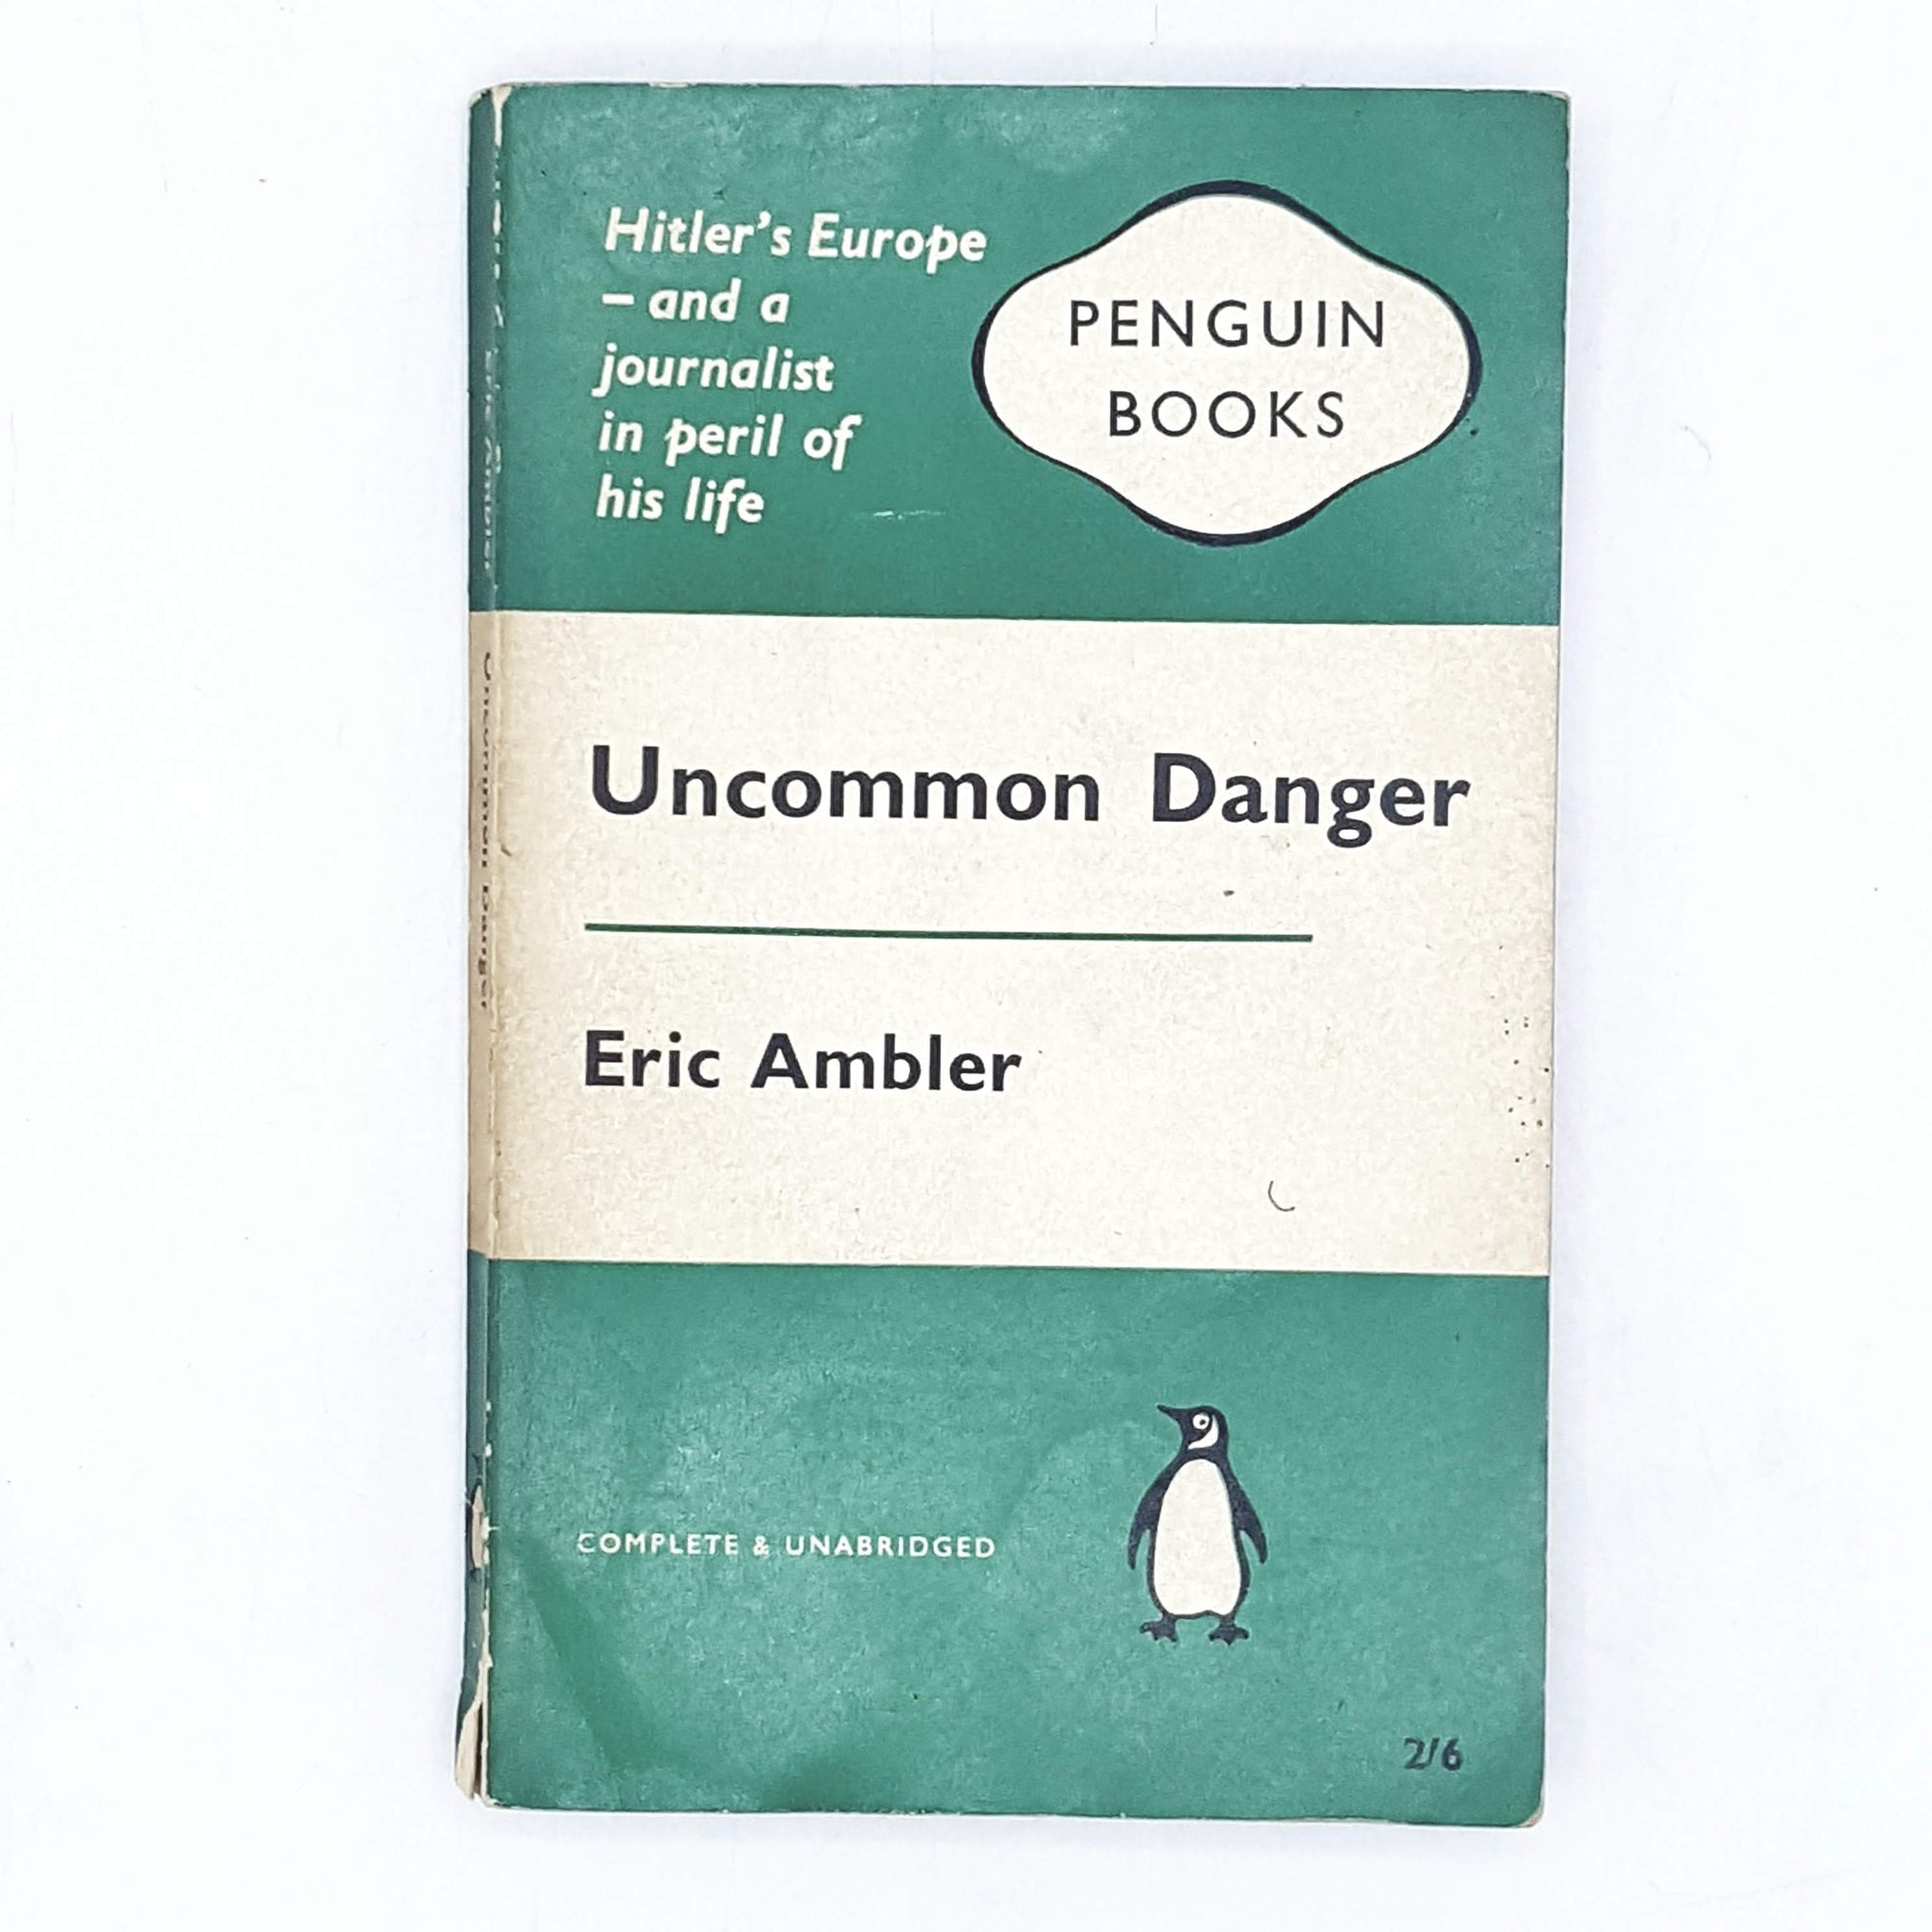 Uncommon Danger by Eric Ambler 1960